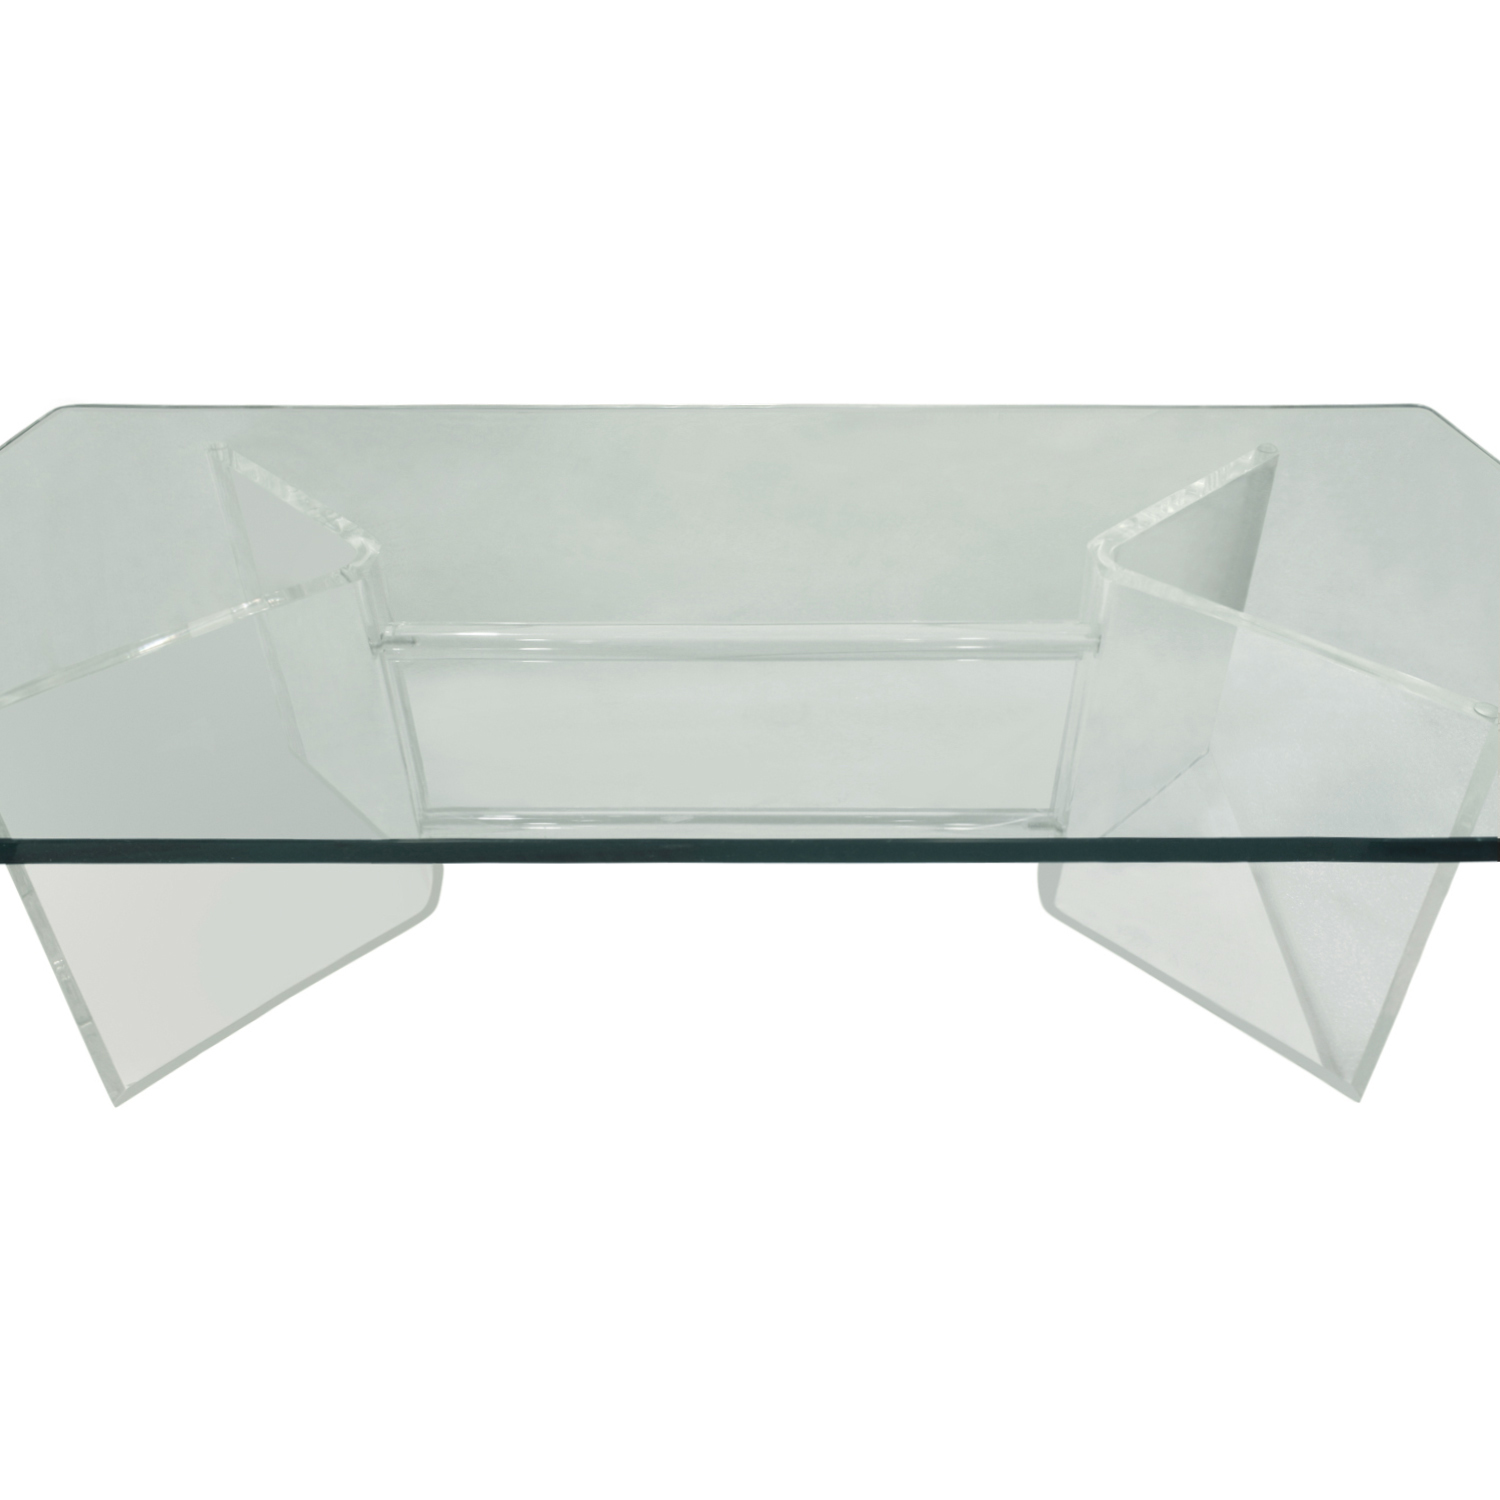 70s 65 rect lucite rod stretchers coffeetable417 top.jpg